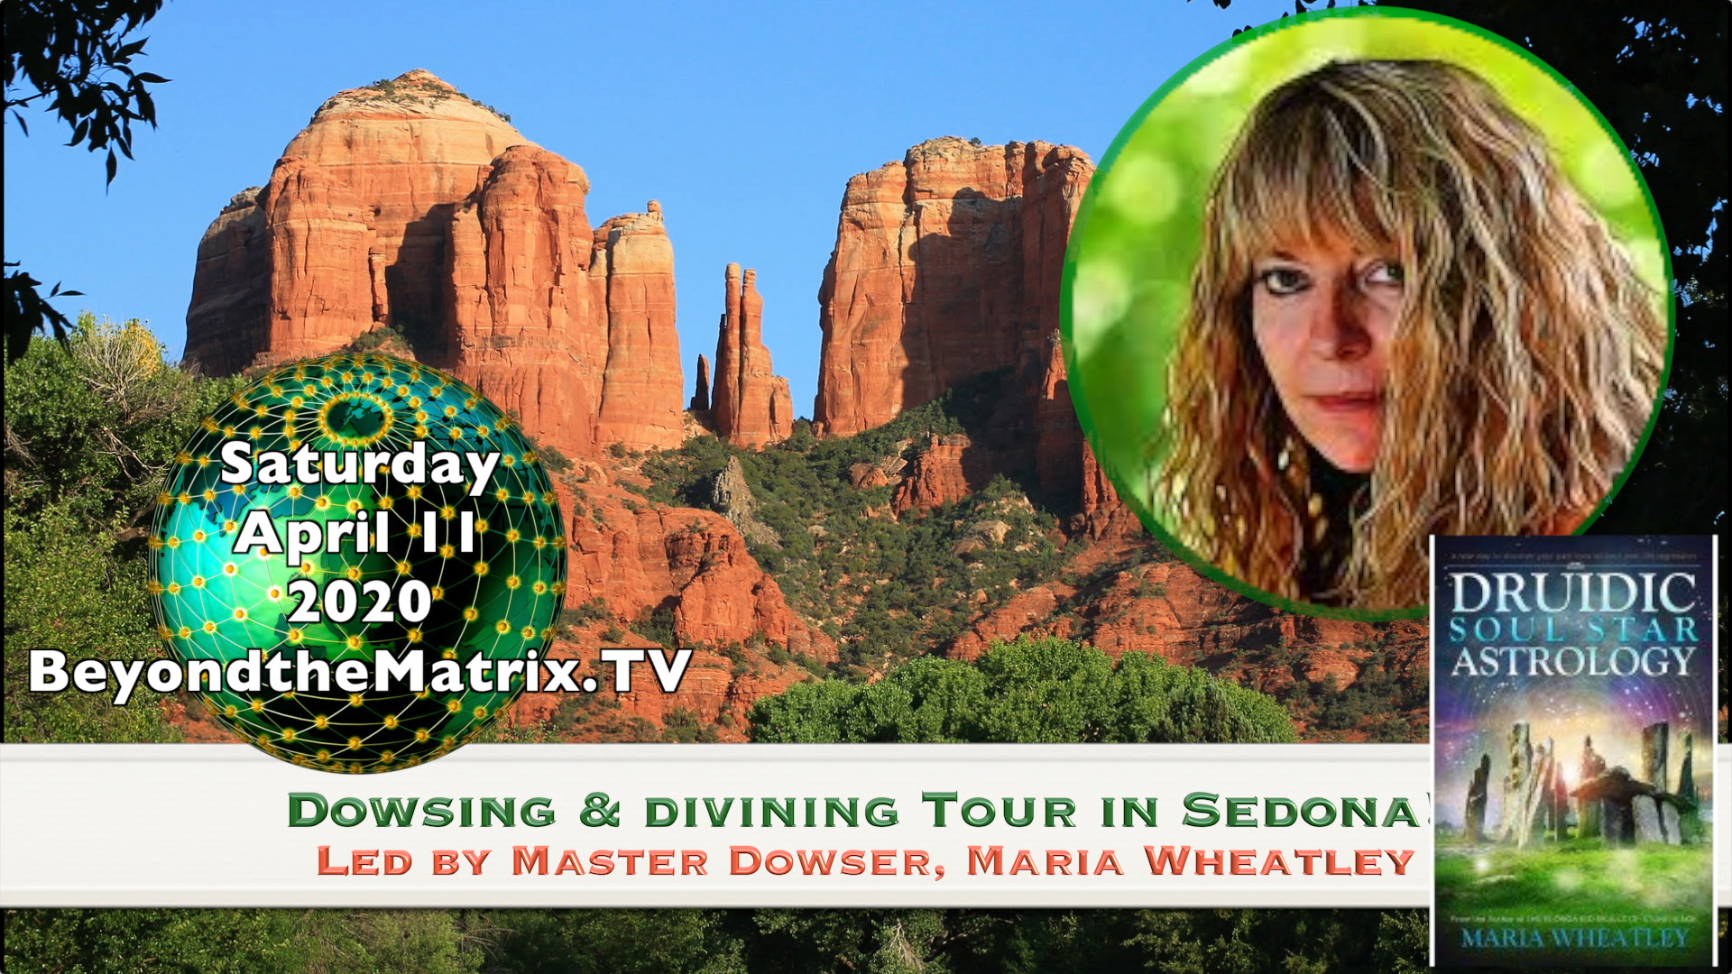 Maria Wheatley Tour